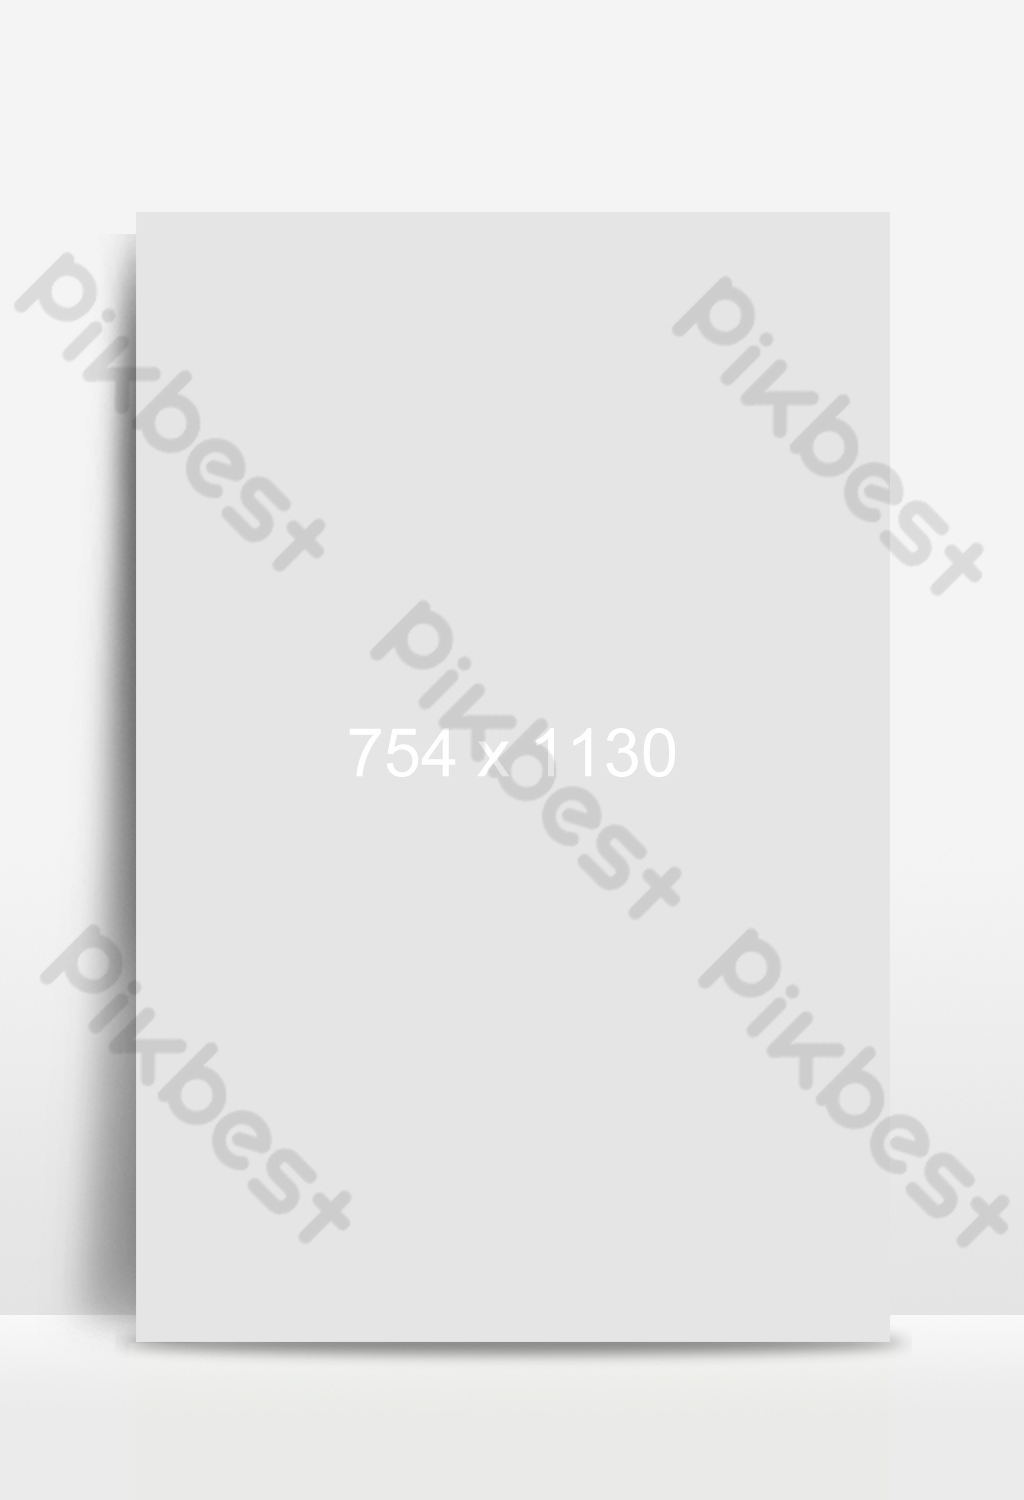 Ramadan background with mosque silhouette - Download Free Vectors, Clipart  Graphics & Vector Art